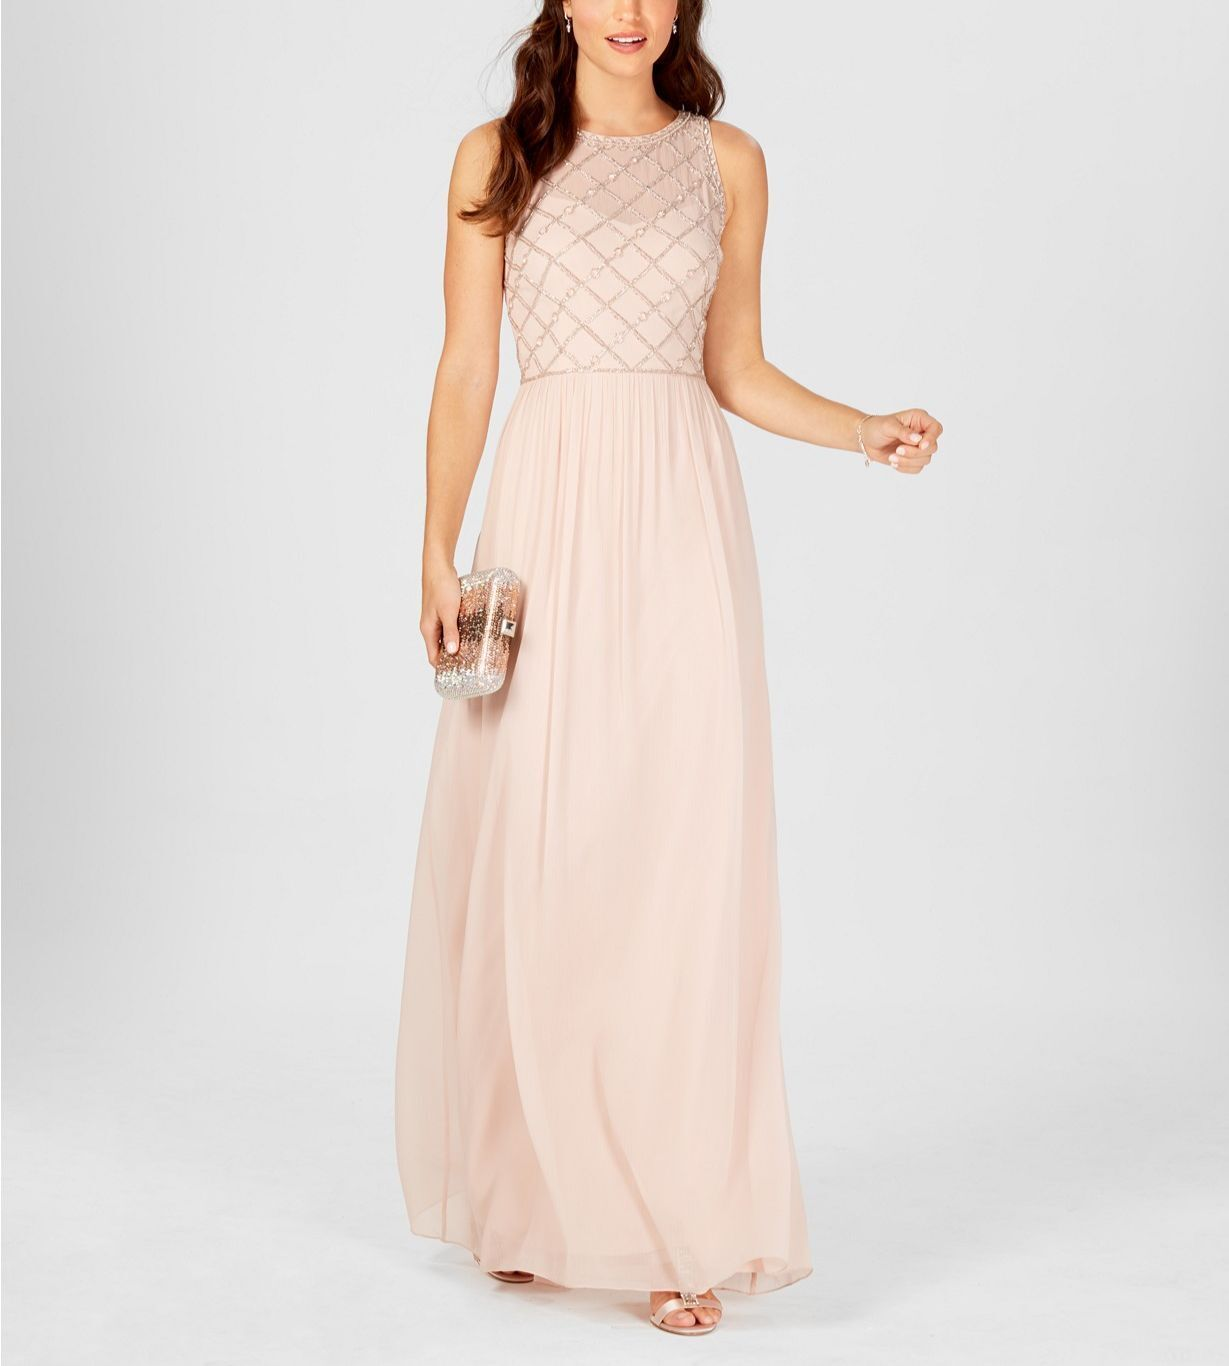 ADRIANNA PAPELL damen Rosa EMBELLISHED BEADED SLEEVELESS GOWN DRESS Größe 12